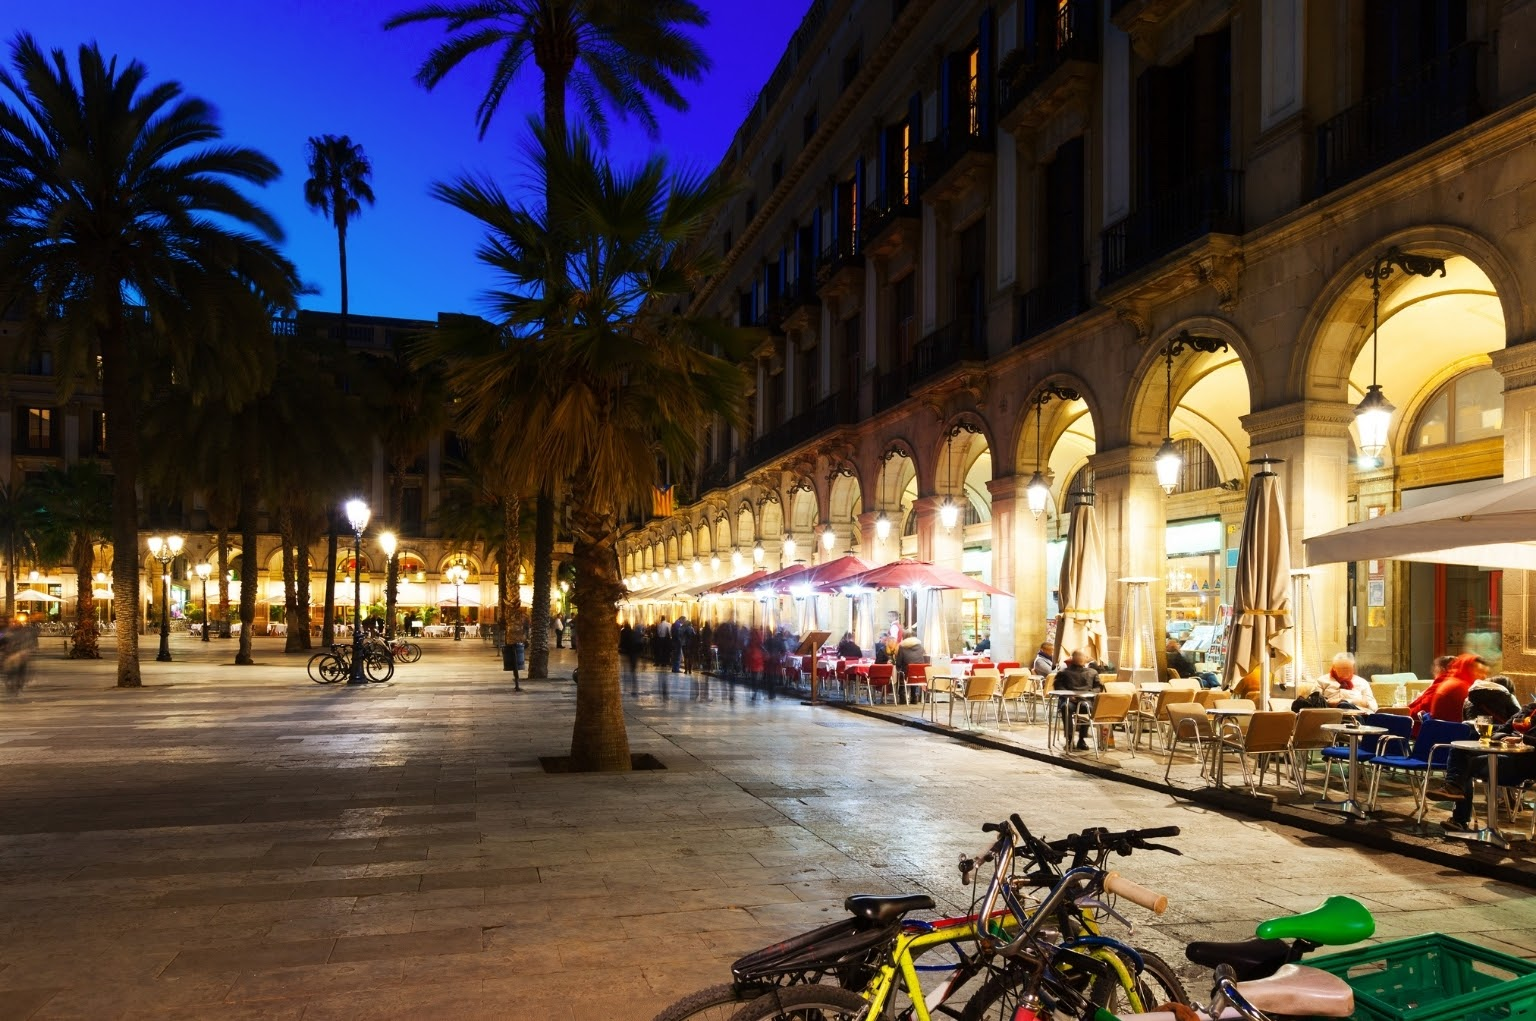 Bikes parked at Placa Reial